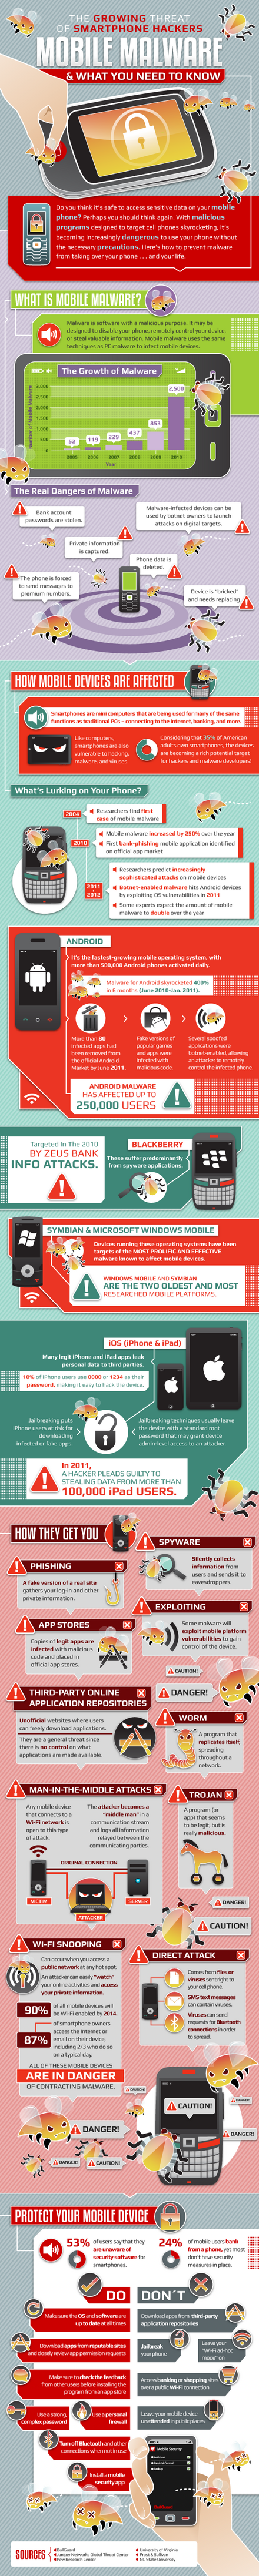 Infographie Mobile et malware